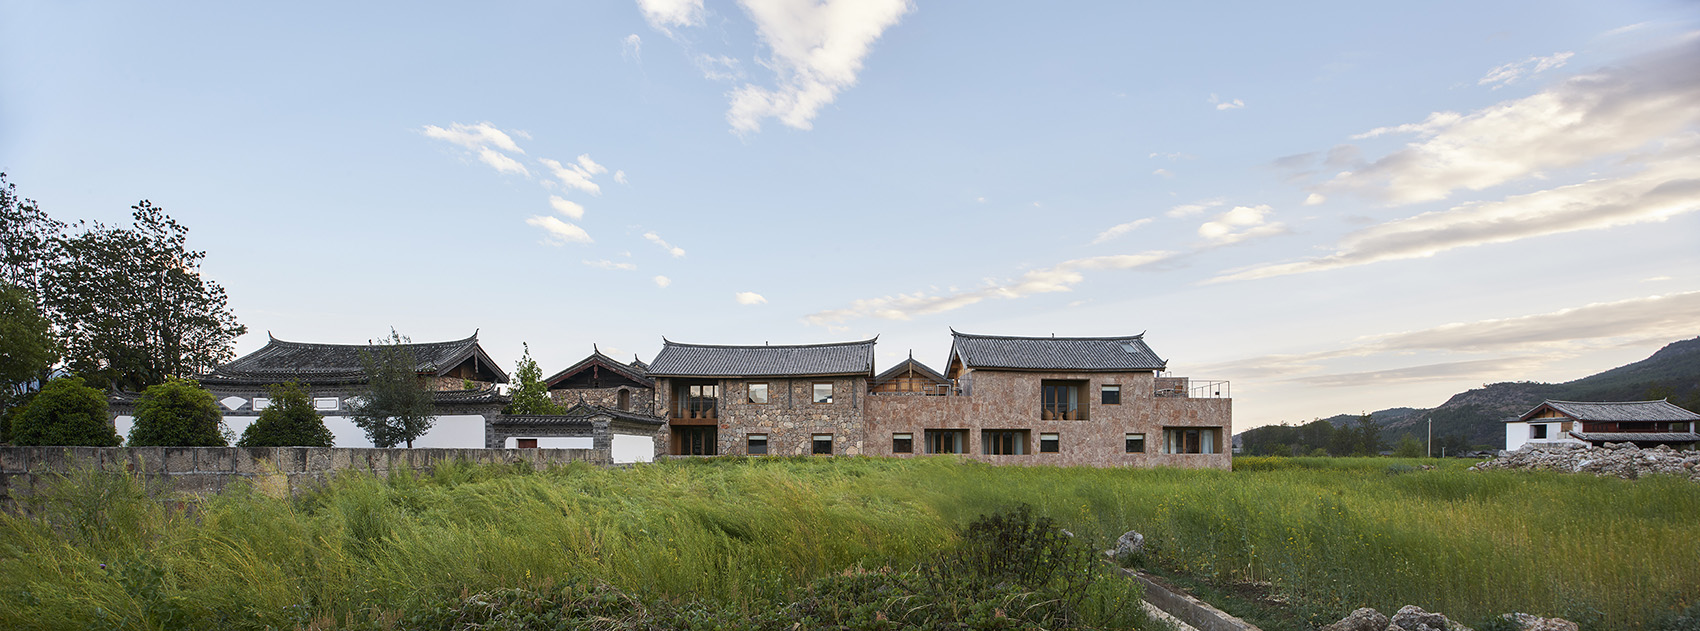 034-tsingpu-baisha-retreat-china-by-tsutsumi-associates